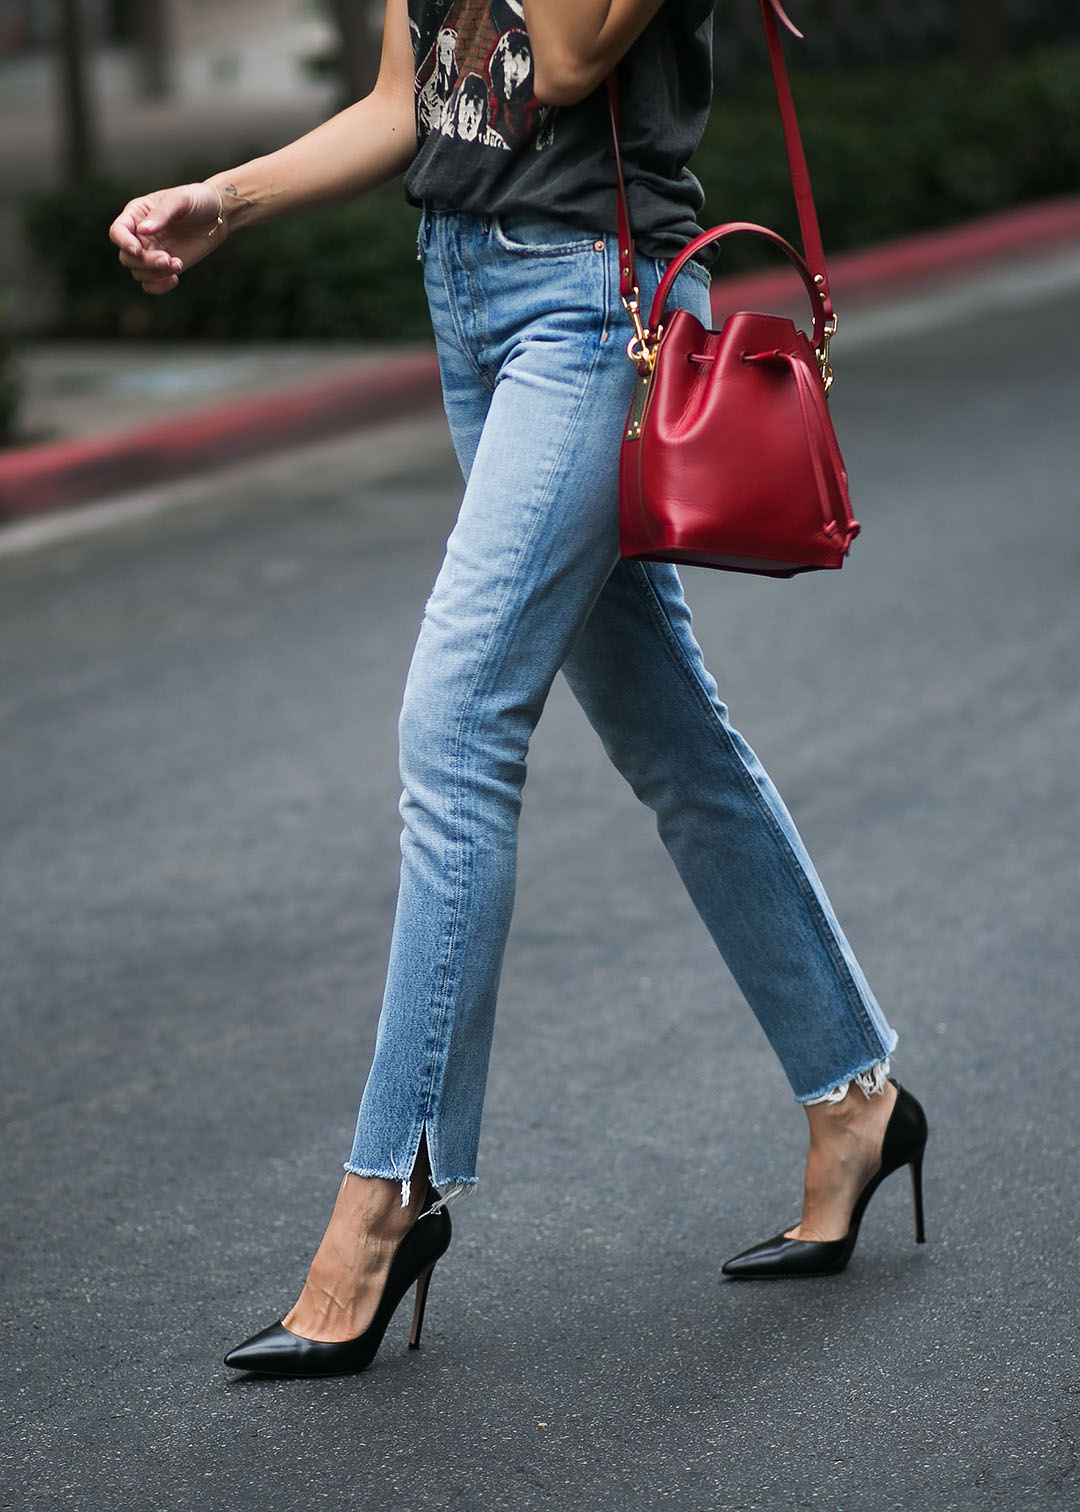 Gianvitto-Rossi-Pumps-and-GRLDFRND-Jeans.jpg